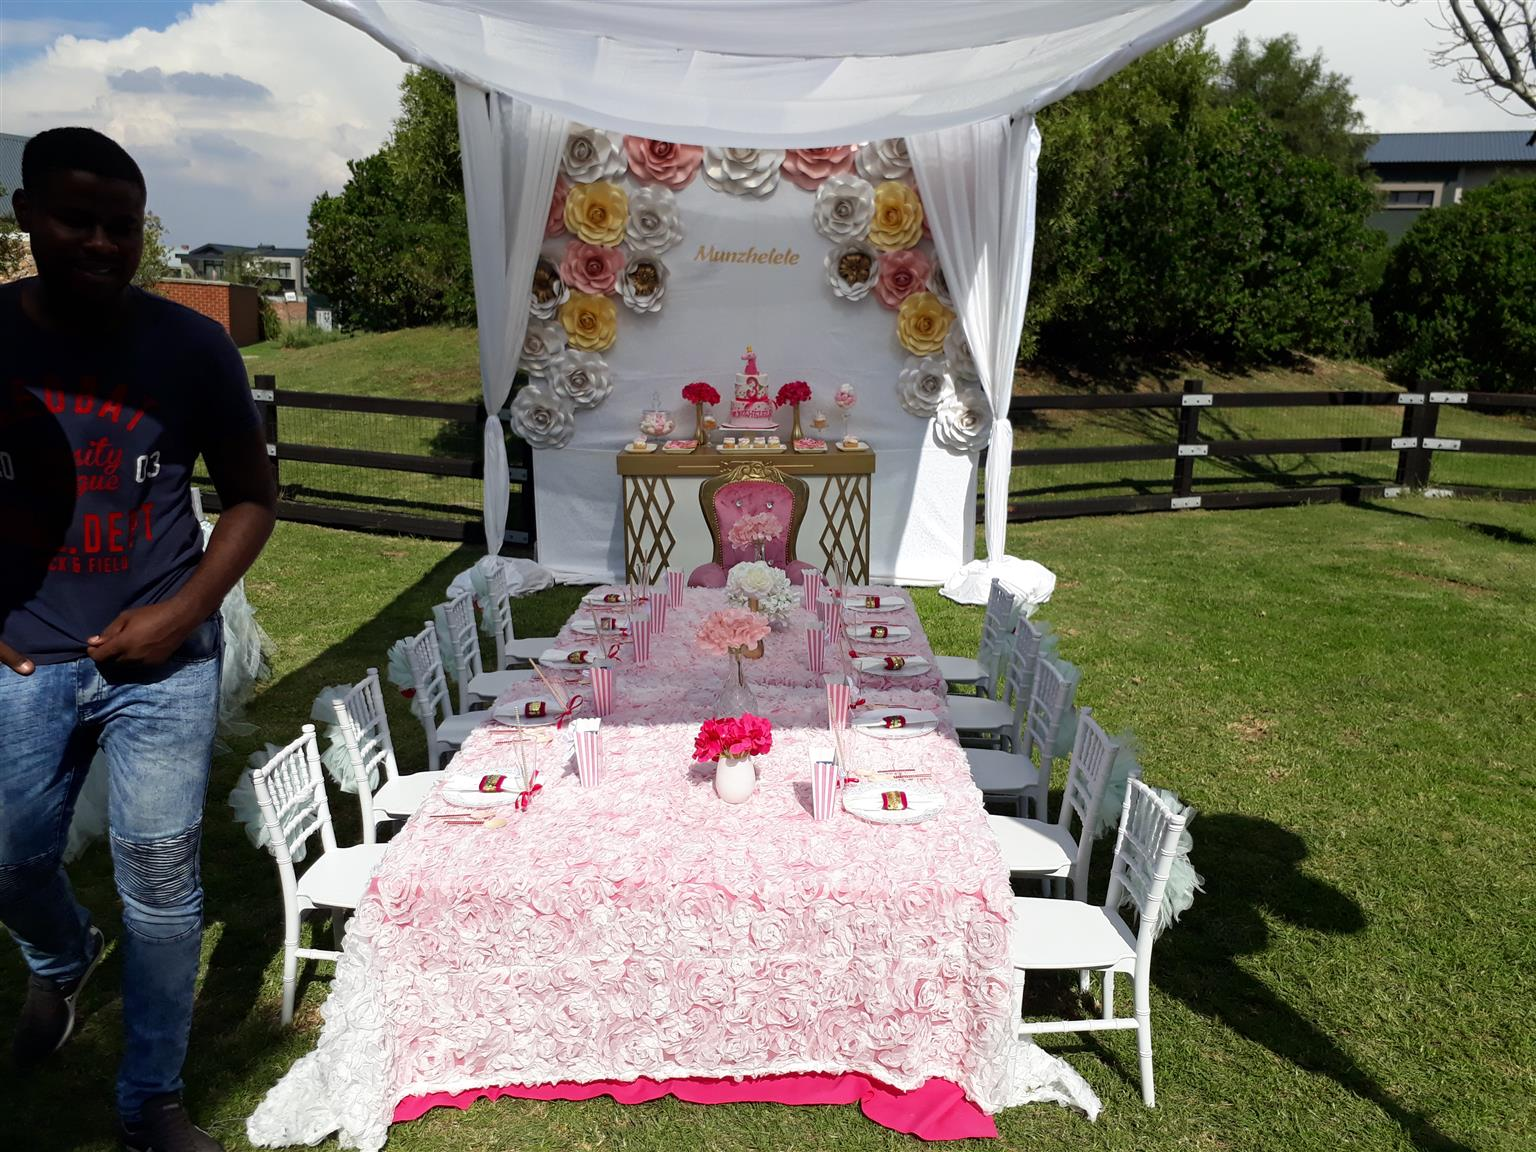 kiddies chair covers for hire cape town table and cover perth parties paper backdrops flowers sales